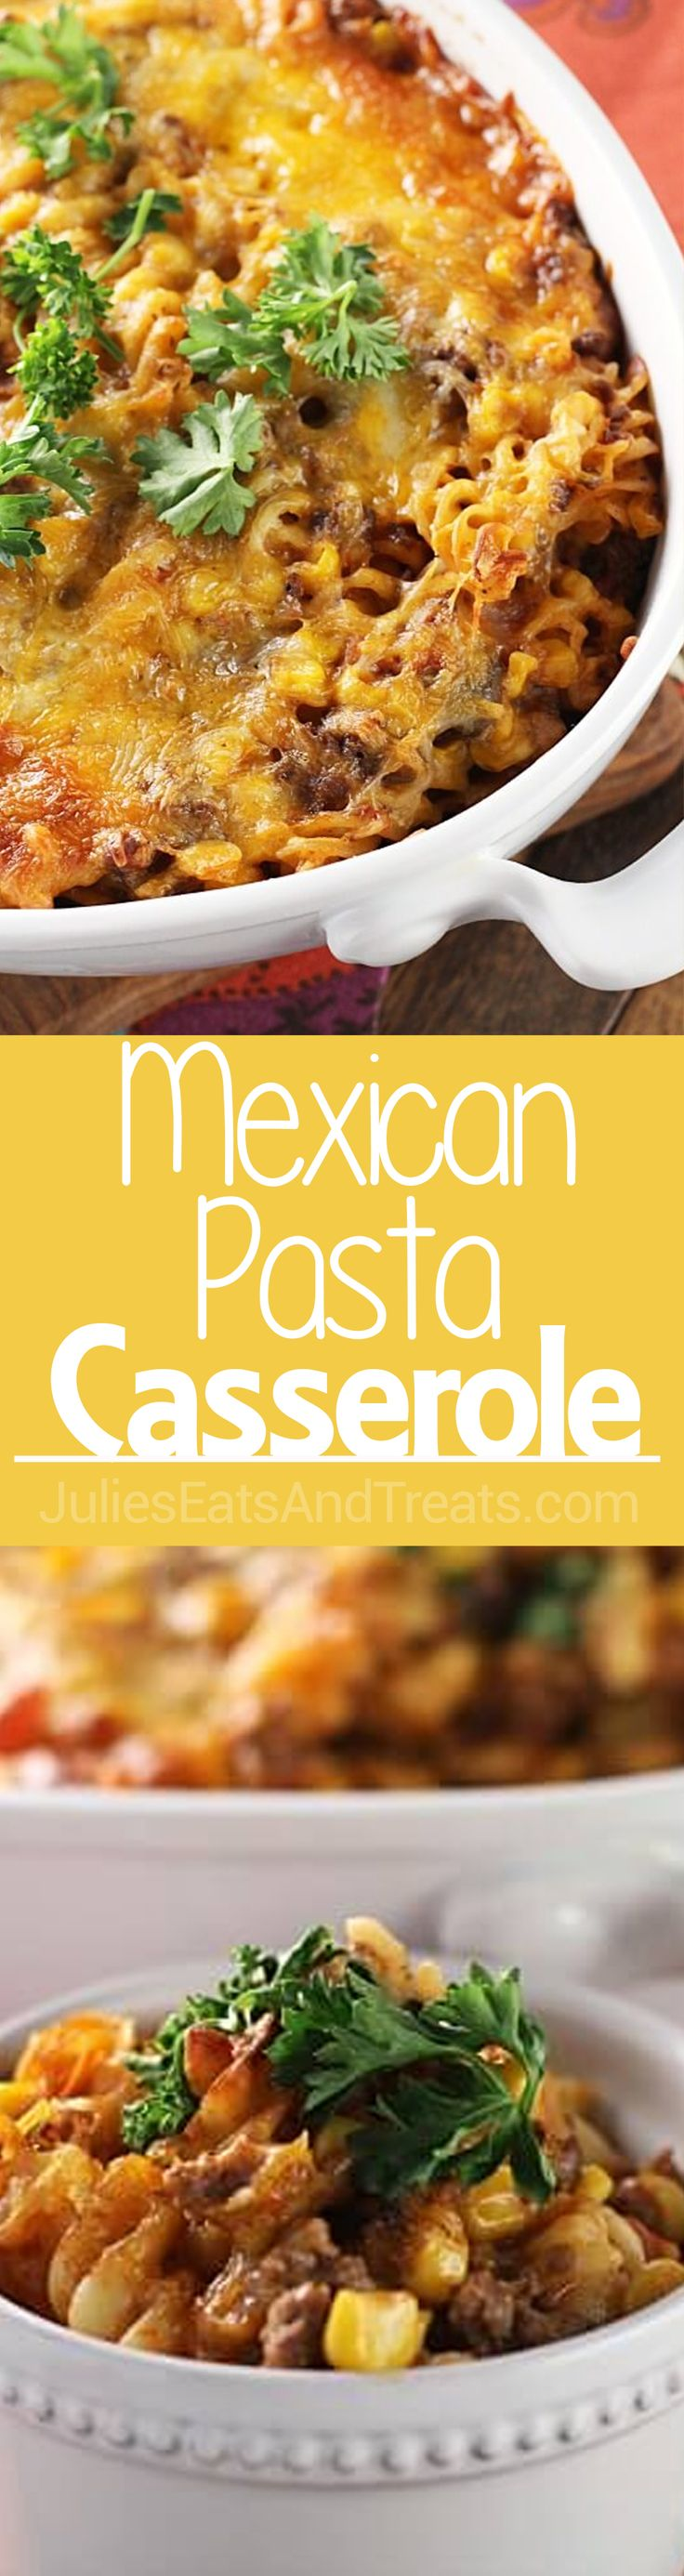 Mexican Pasta Casserole ~ Easy Casserole Loaded with Pasta, Beef, Salsa, Corn and Mexican Cheese! via @julieseats